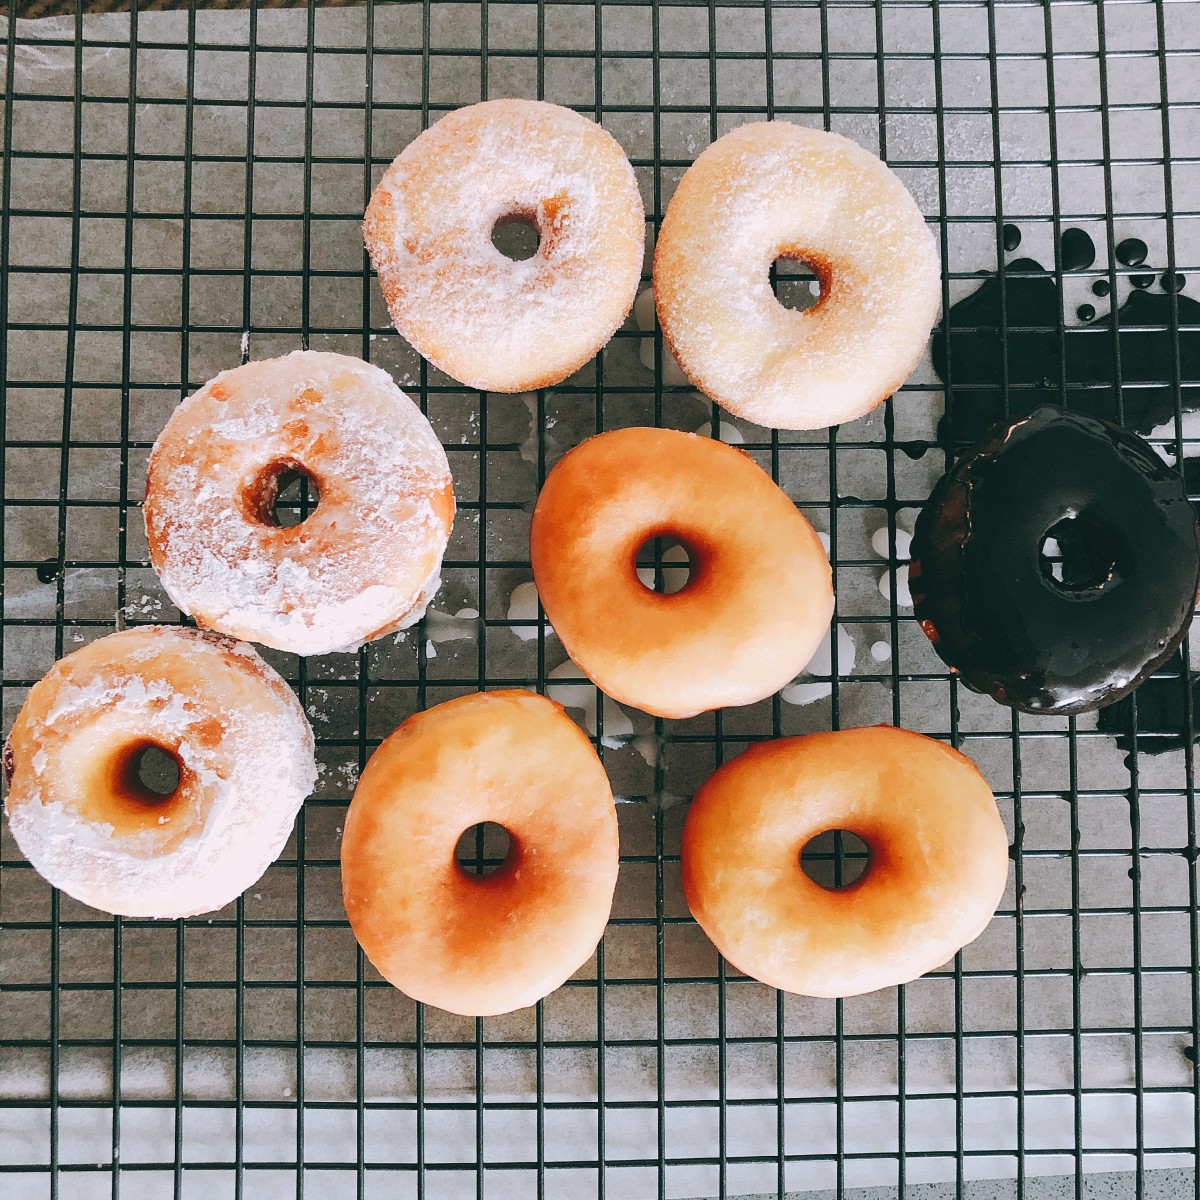 Rest the donuts into a rack.